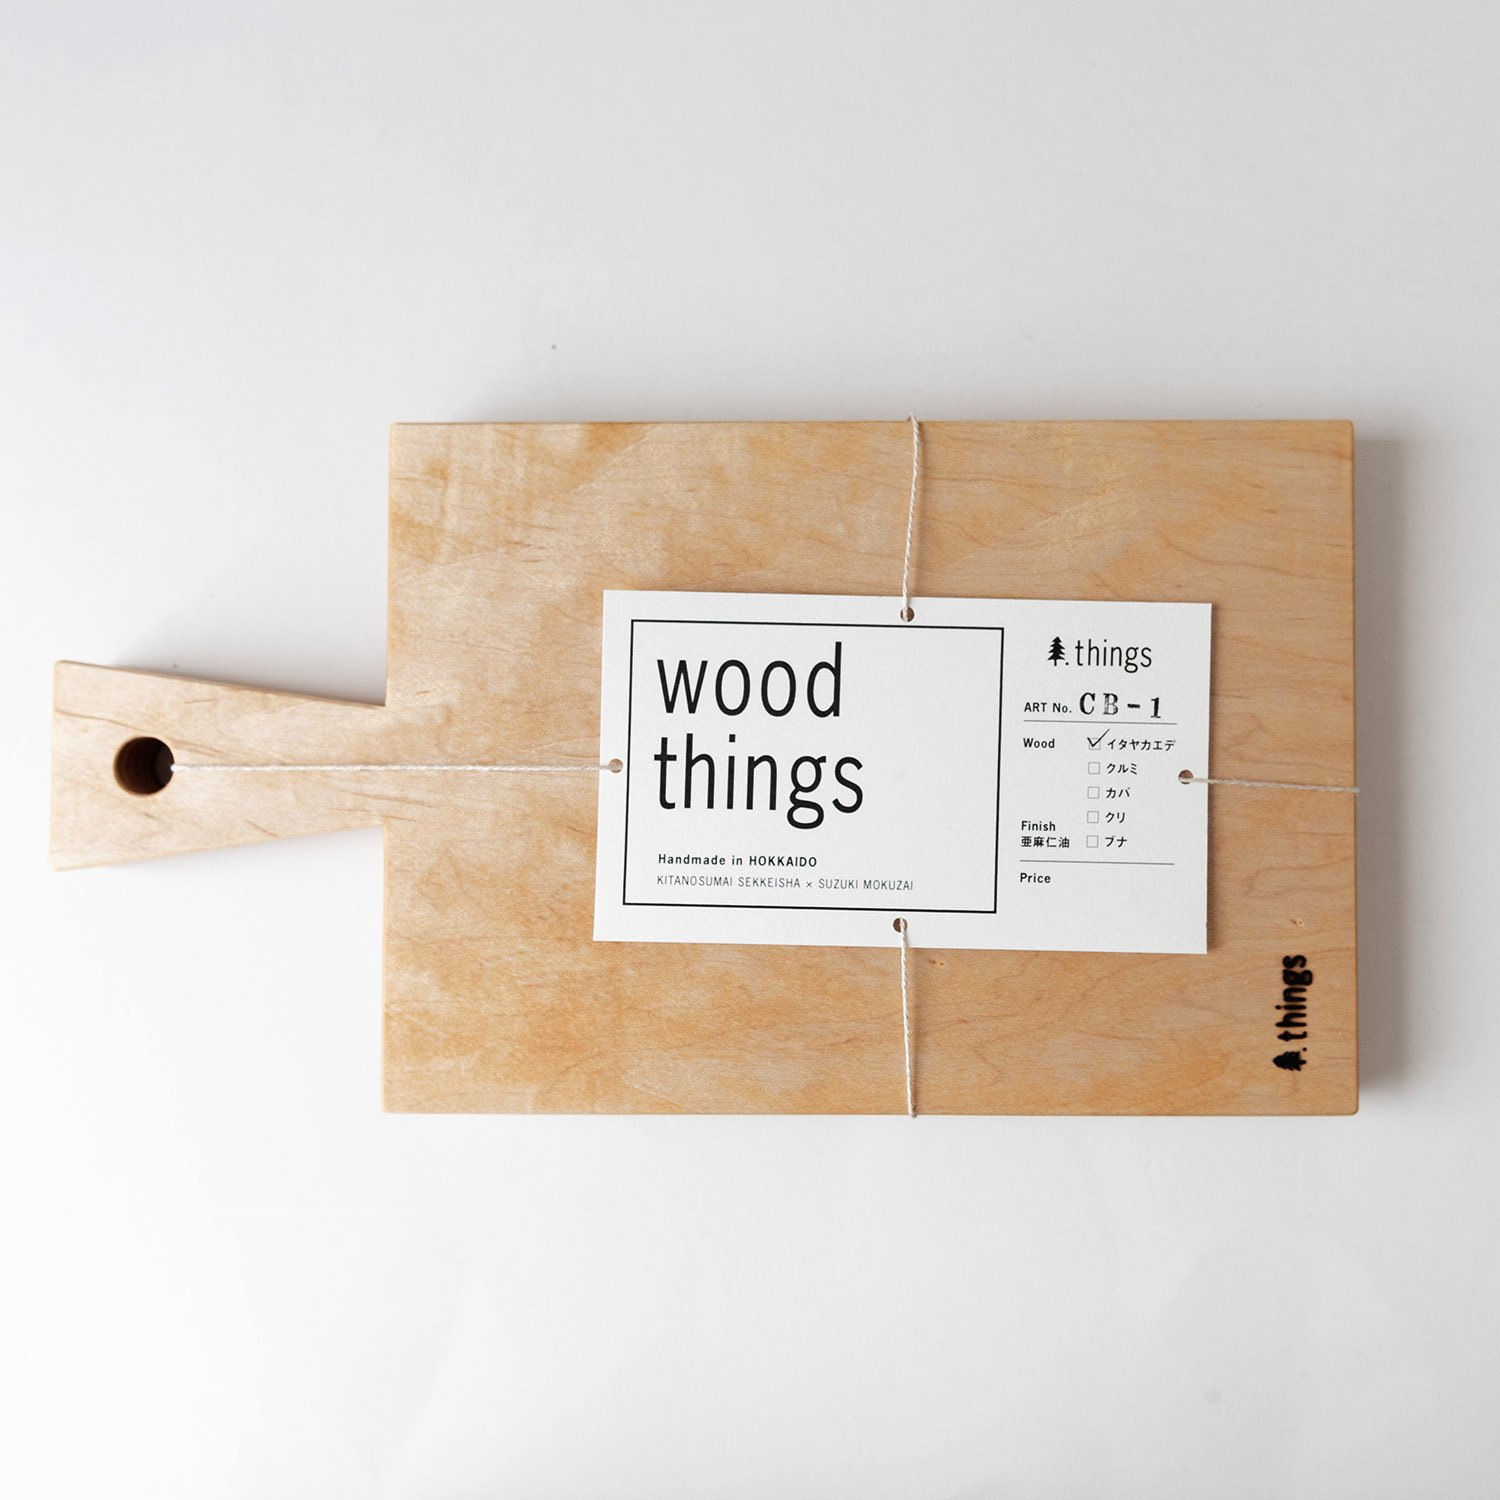 CB-1 cutting board イタヤカエデ<img class='new_mark_img2' src='https://img.shop-pro.jp/img/new/icons14.gif' style='border:none;display:inline;margin:0px;padding:0px;width:auto;' />